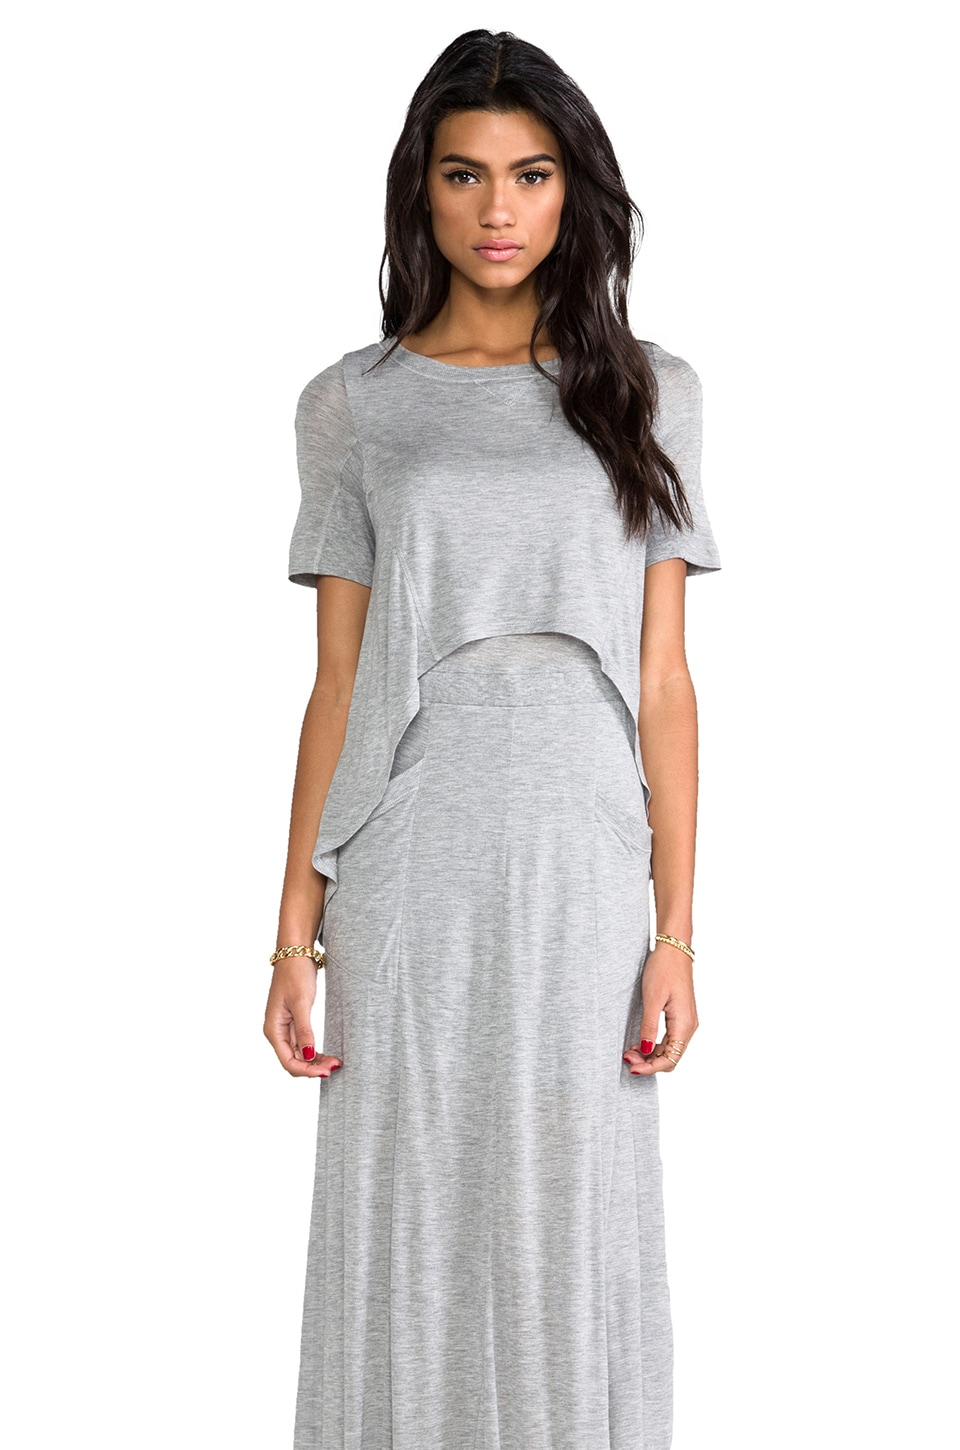 Heather Layered Maxi Dress in Light Heather Grey